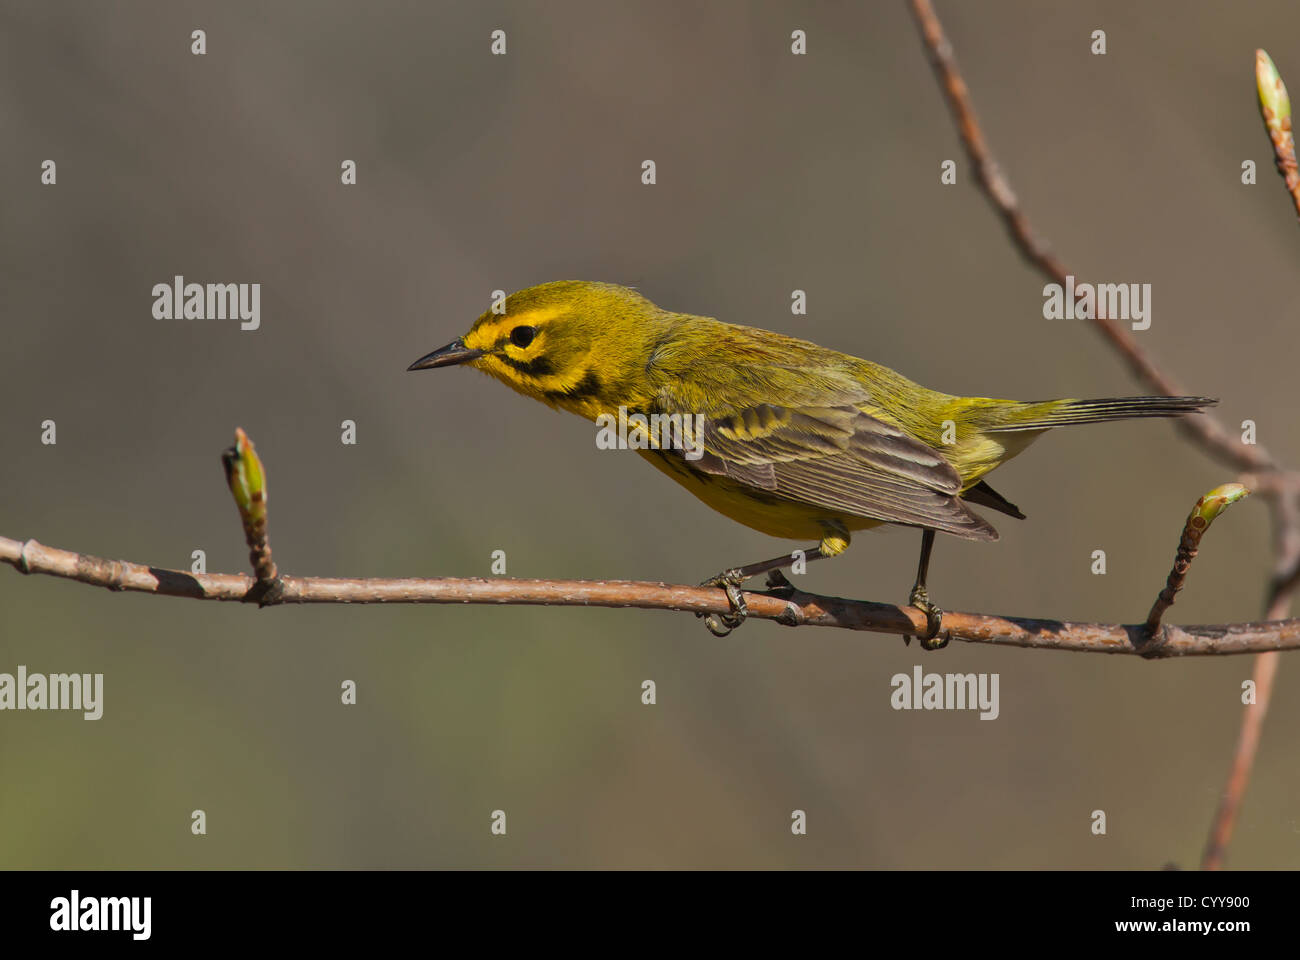 Prairie Warbler (Setophaga discolor) on a branch - Stock Image